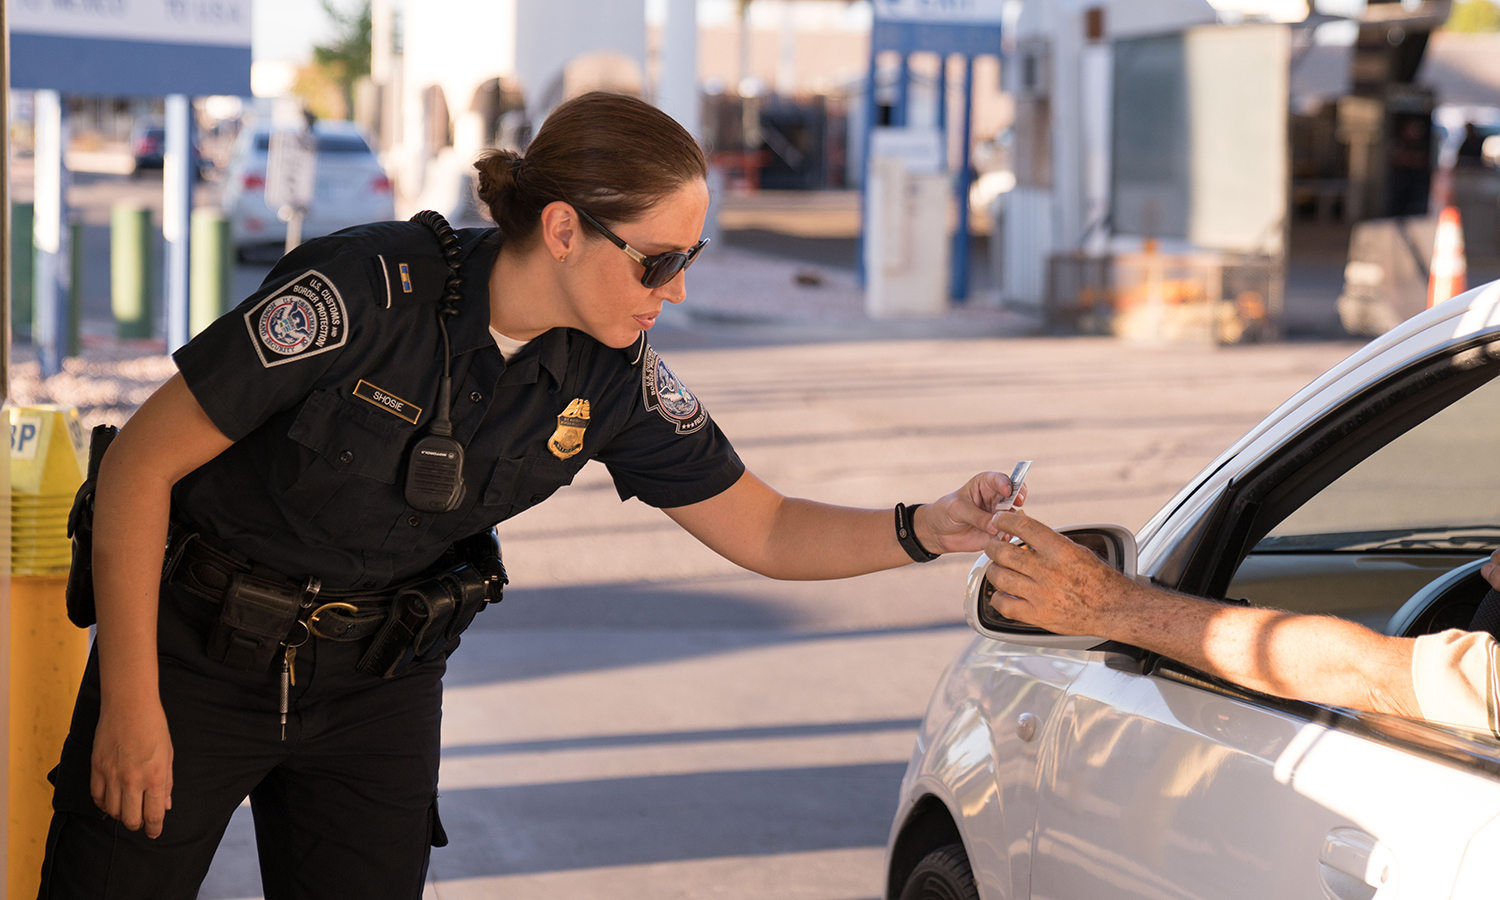 U.S. Customs and Border Protection, Office of Field Operations officer processes passenger; checking identification and vehicle prior to passenger crossing into the United States from Mexico at the San Luis border crossing on Sept. 11, 2017 (photo credit: CBP photo by Scot Osborne).